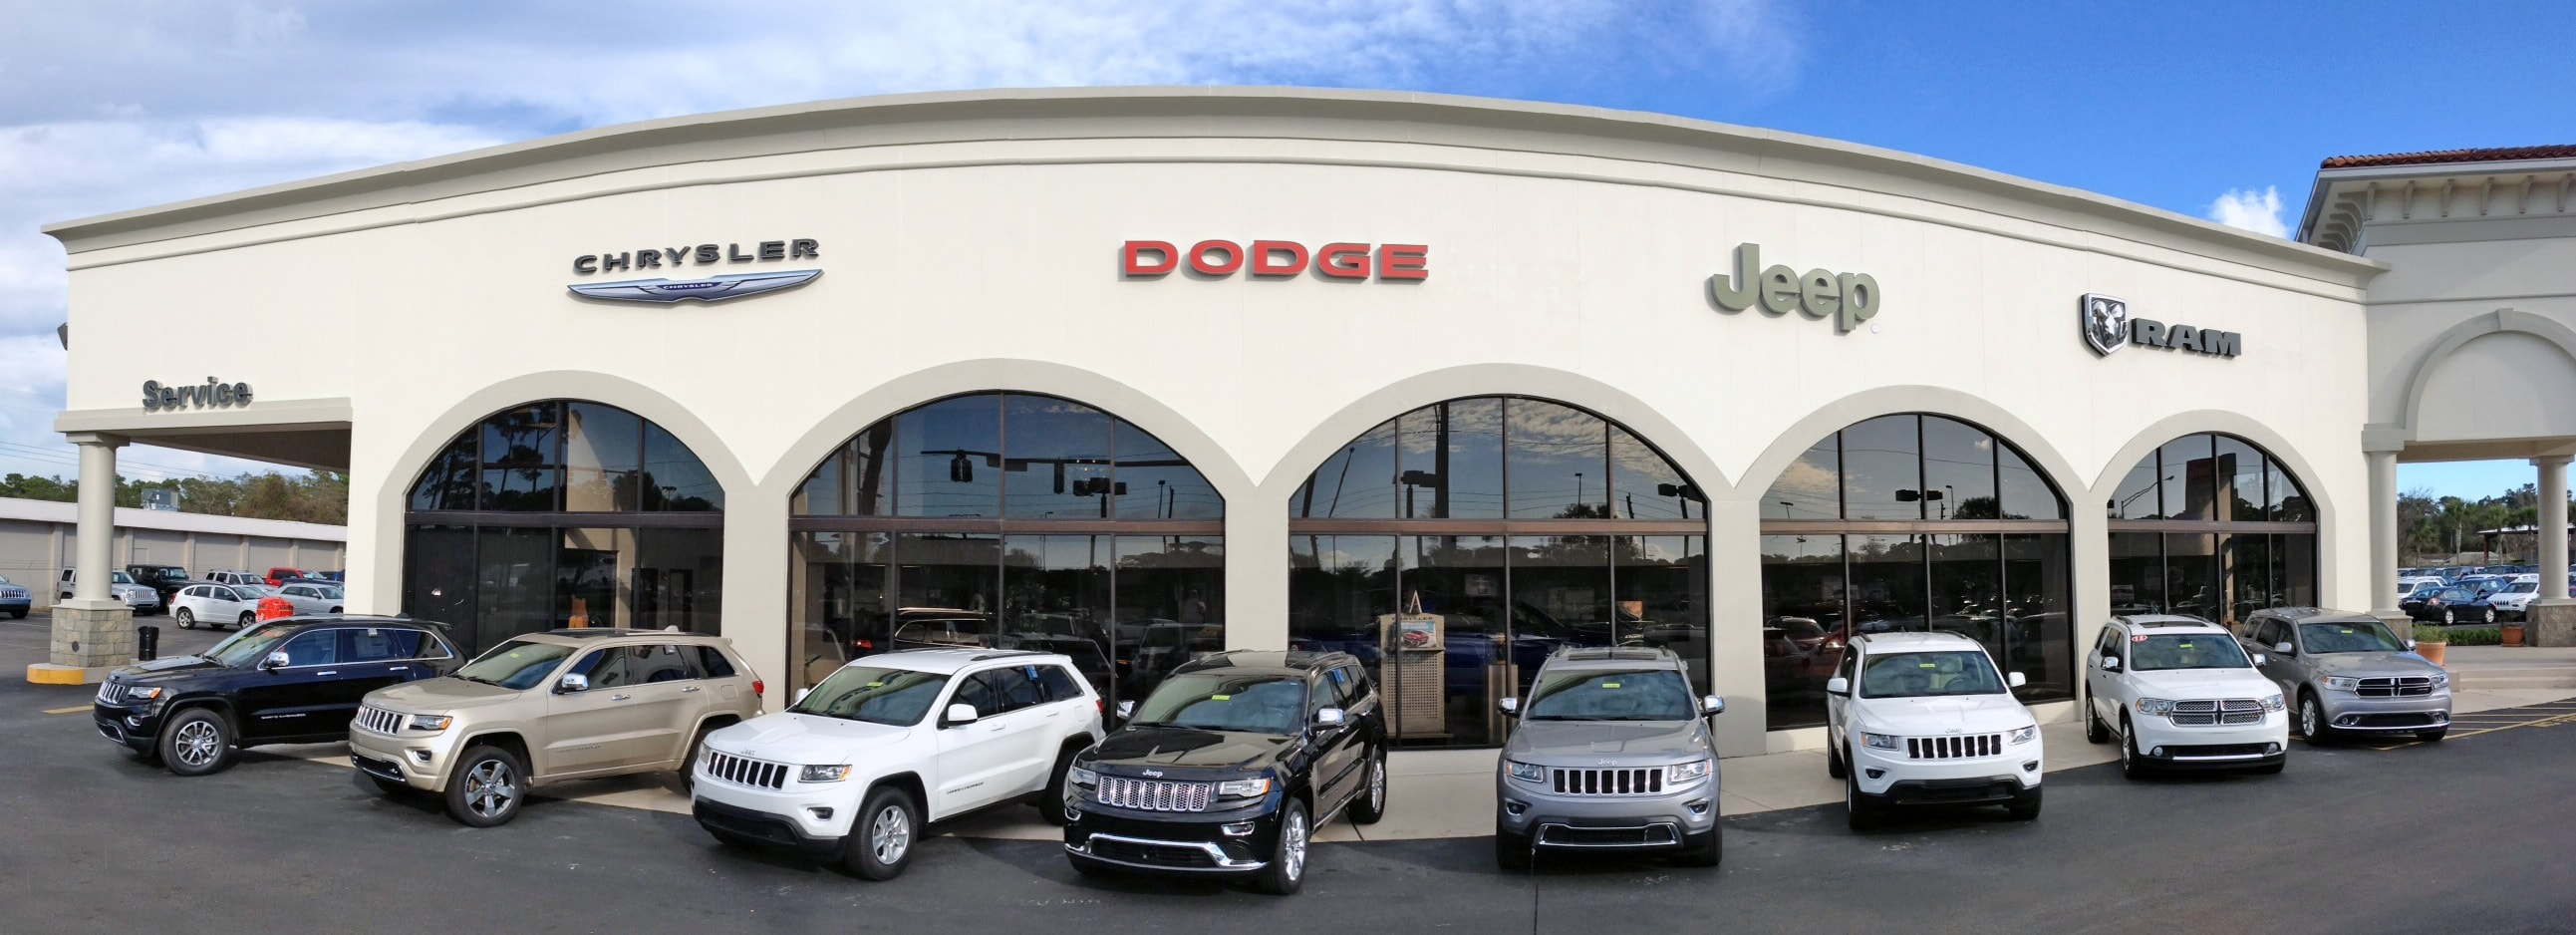 Atlantic chrysler dodge jeep ram - Atlantic Dodge Chrysler Jeep Ram